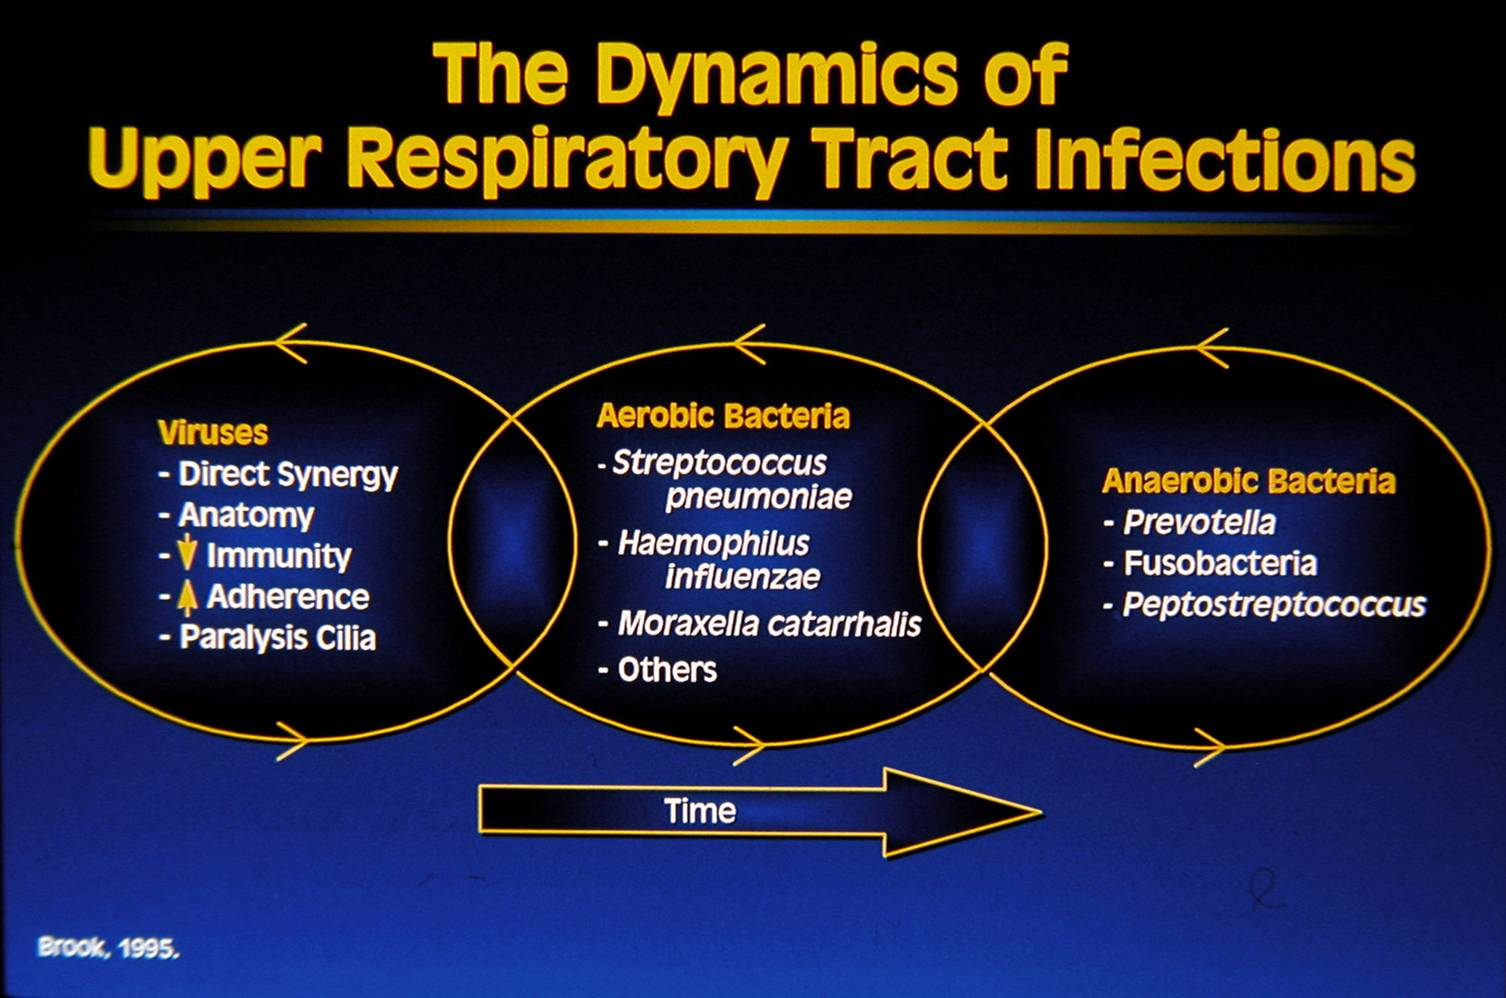 Bacteria cause upper respiratory infection 68